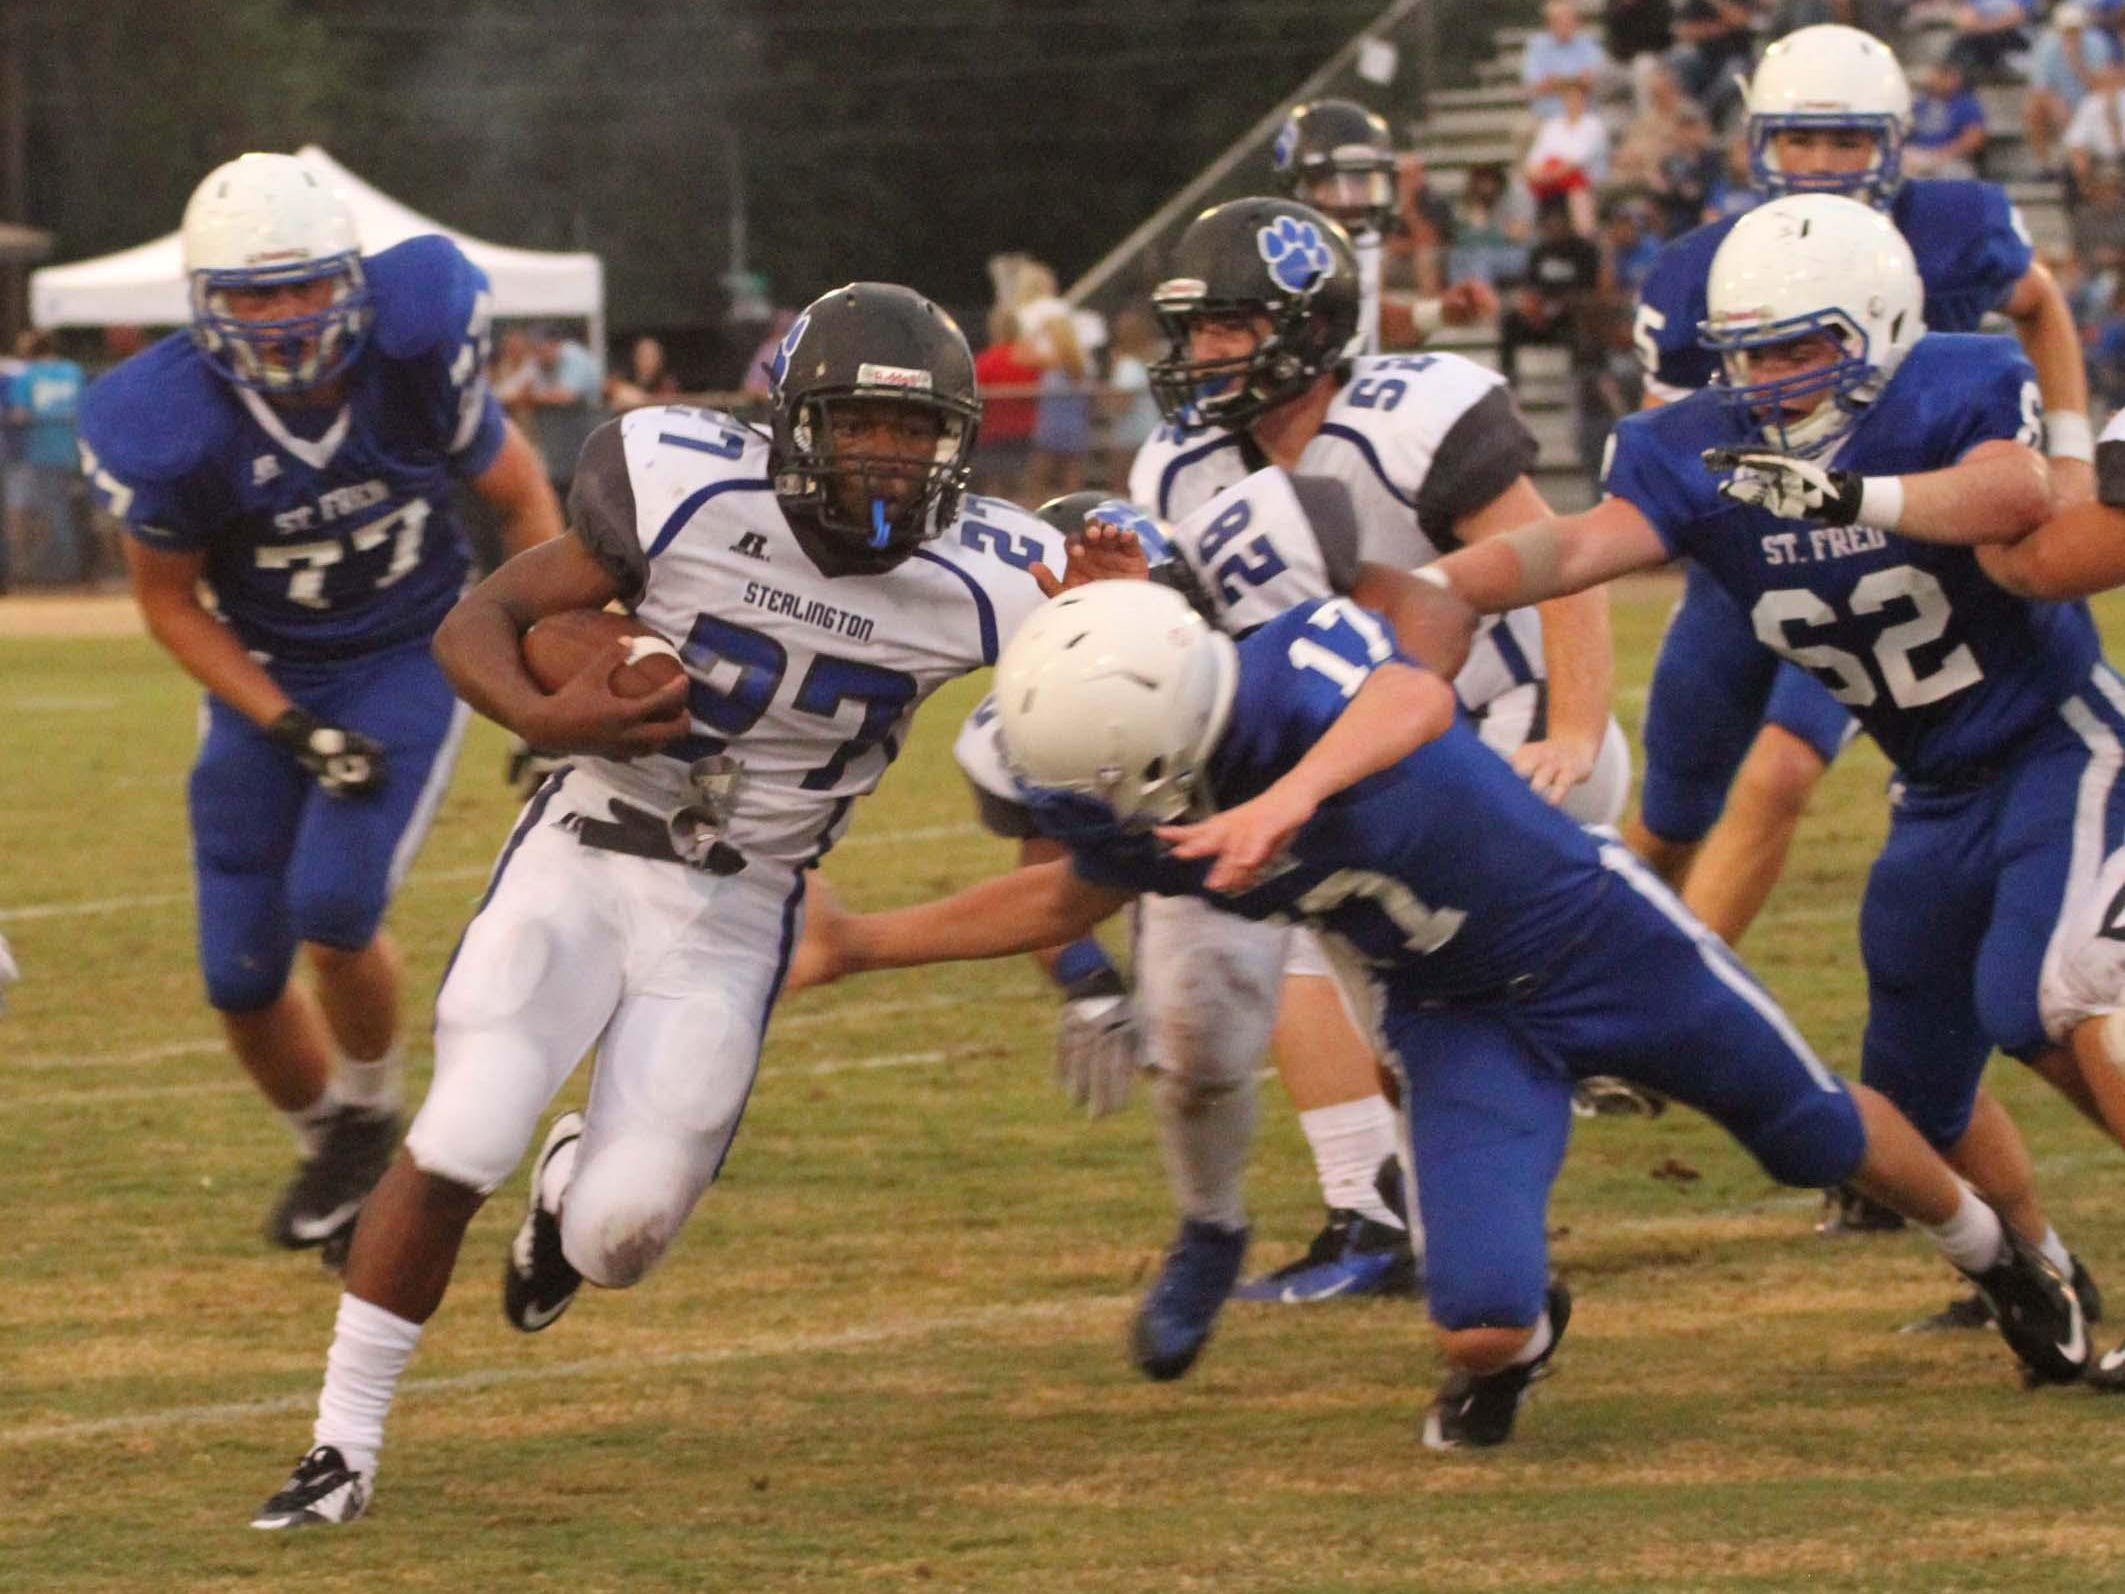 Sterlington running back Devantae Douglas (27) rushed for 162 yards and thre touchdowns last week against Oak Grove.